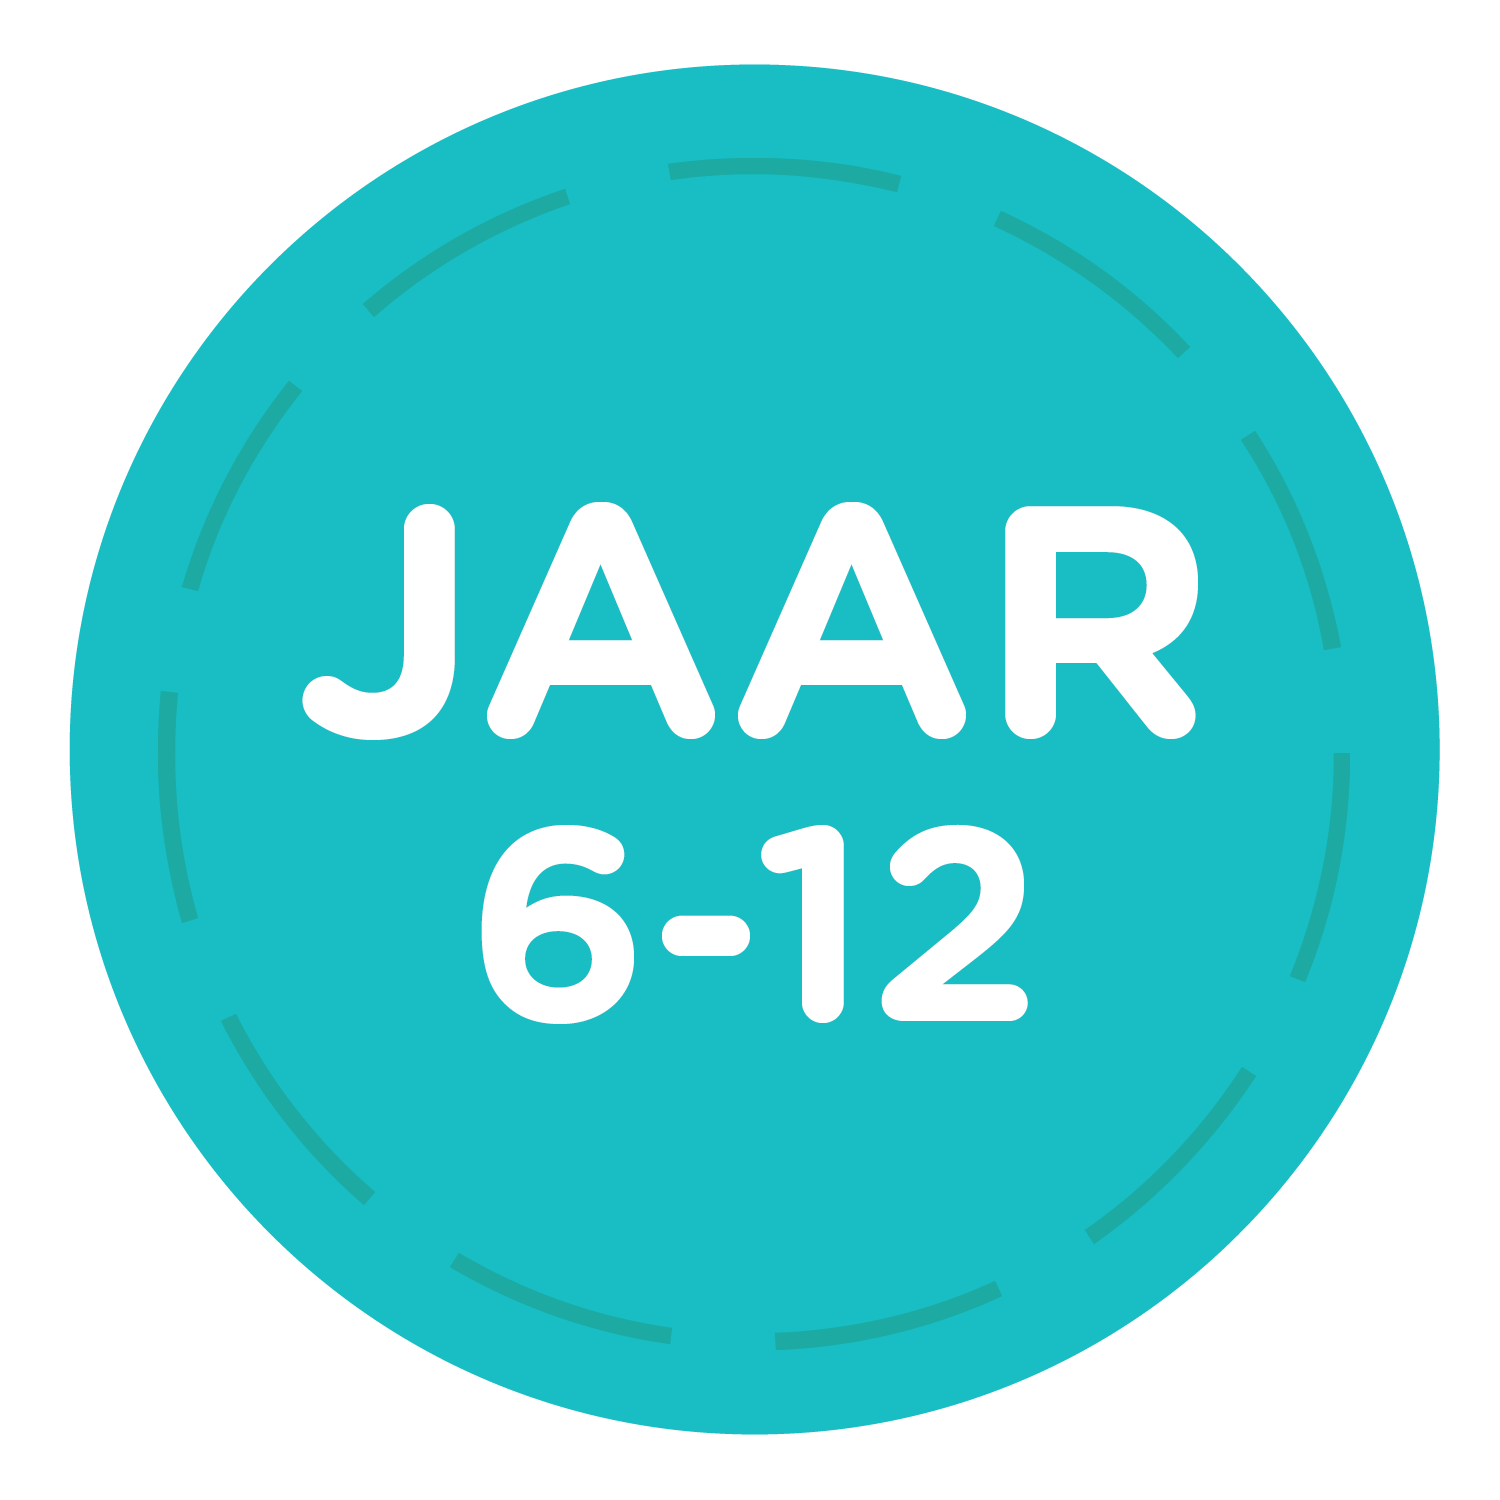 Age-Group-Circles-With-Text-Dutch-Primary